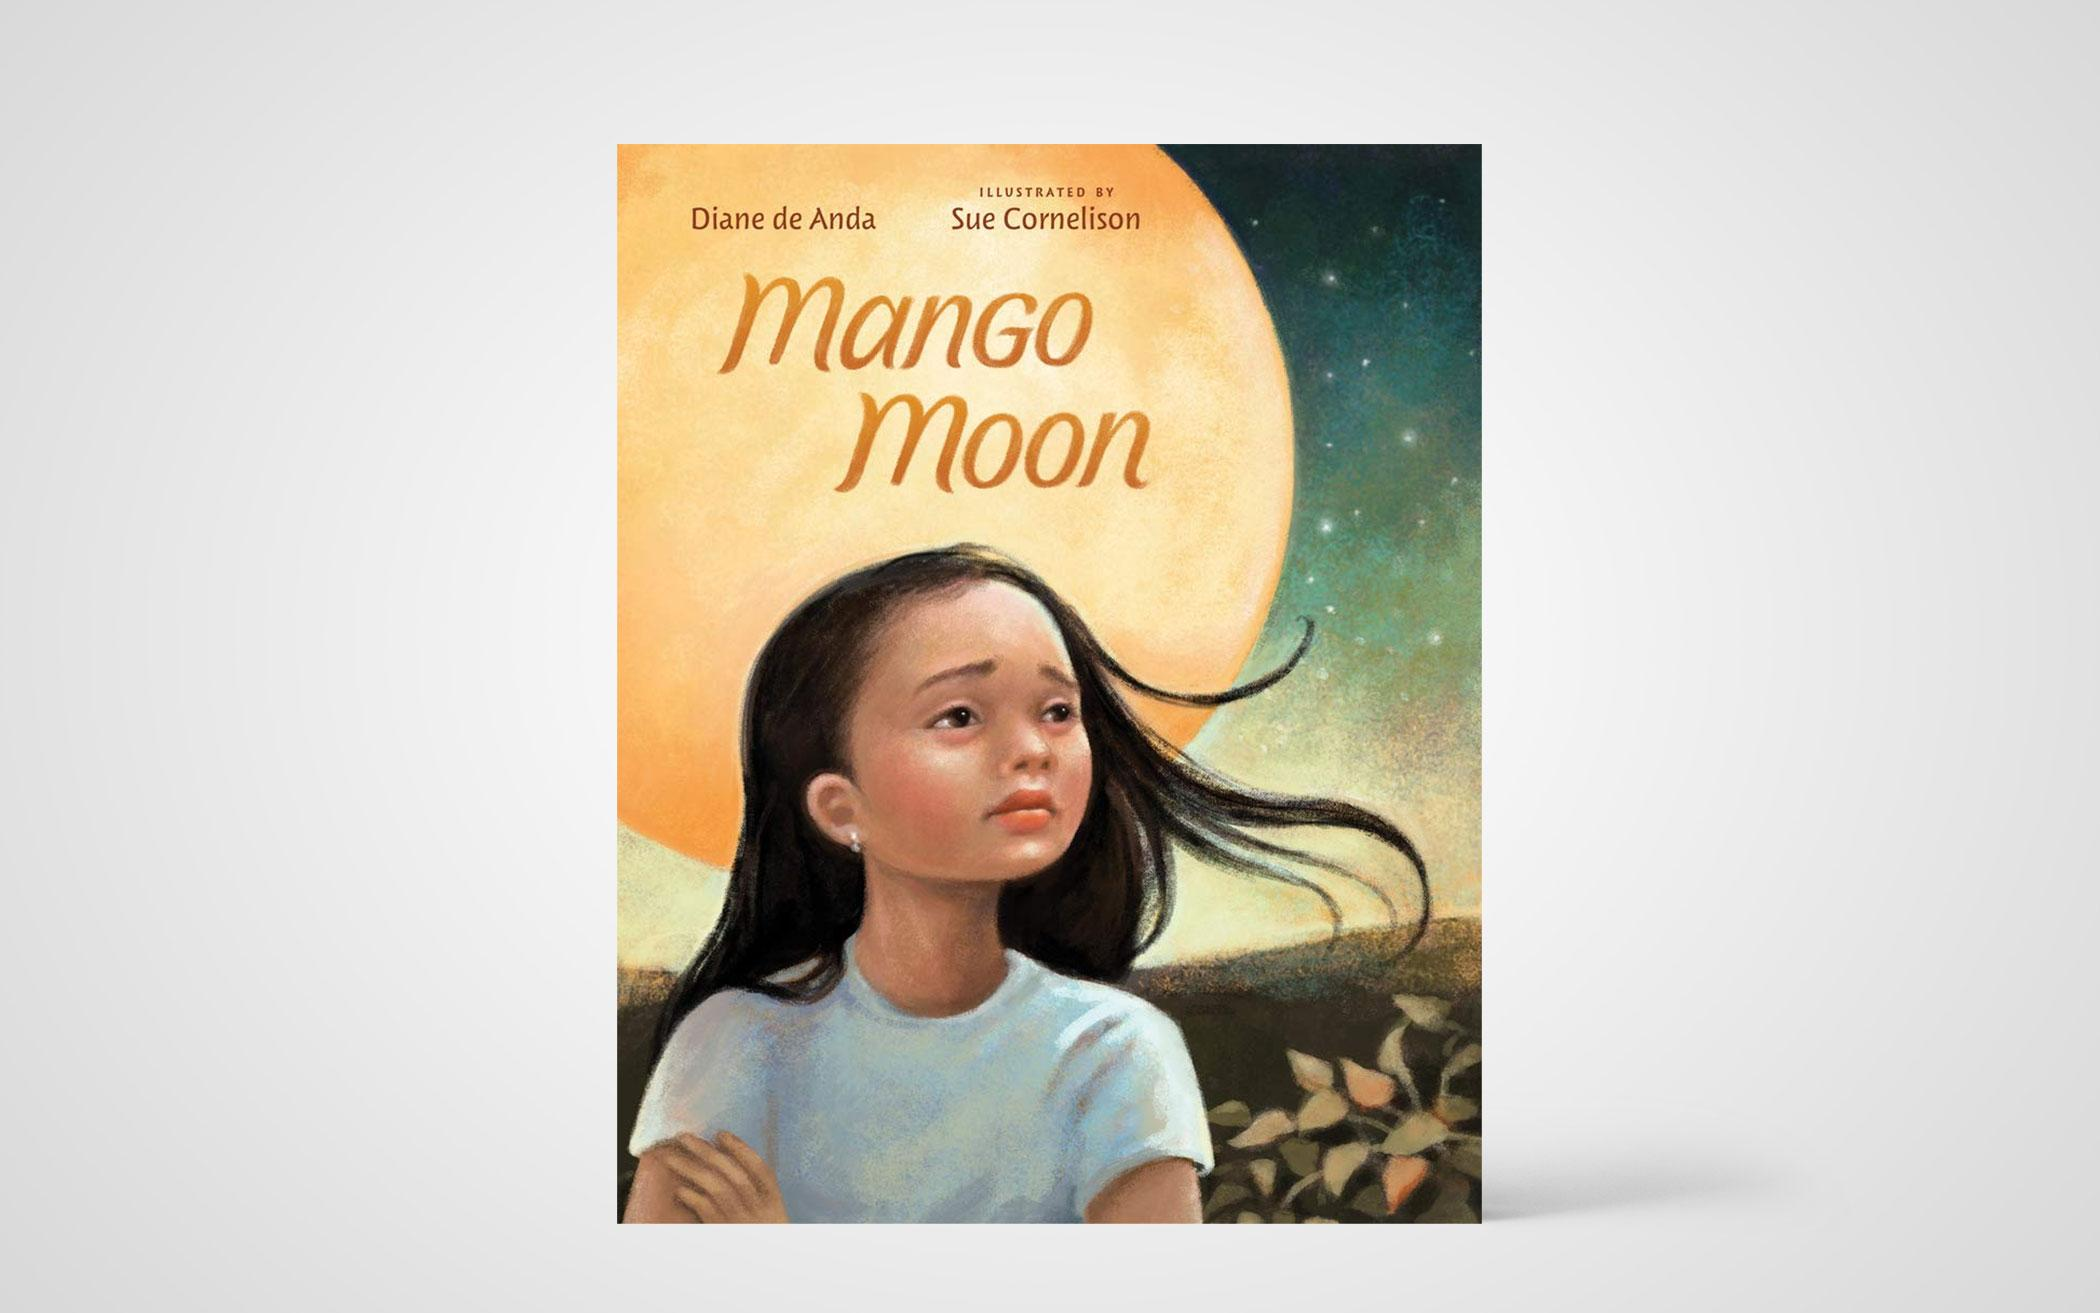 Mango Moon by Diane de Anda. Illustrated by Sue Cornelison